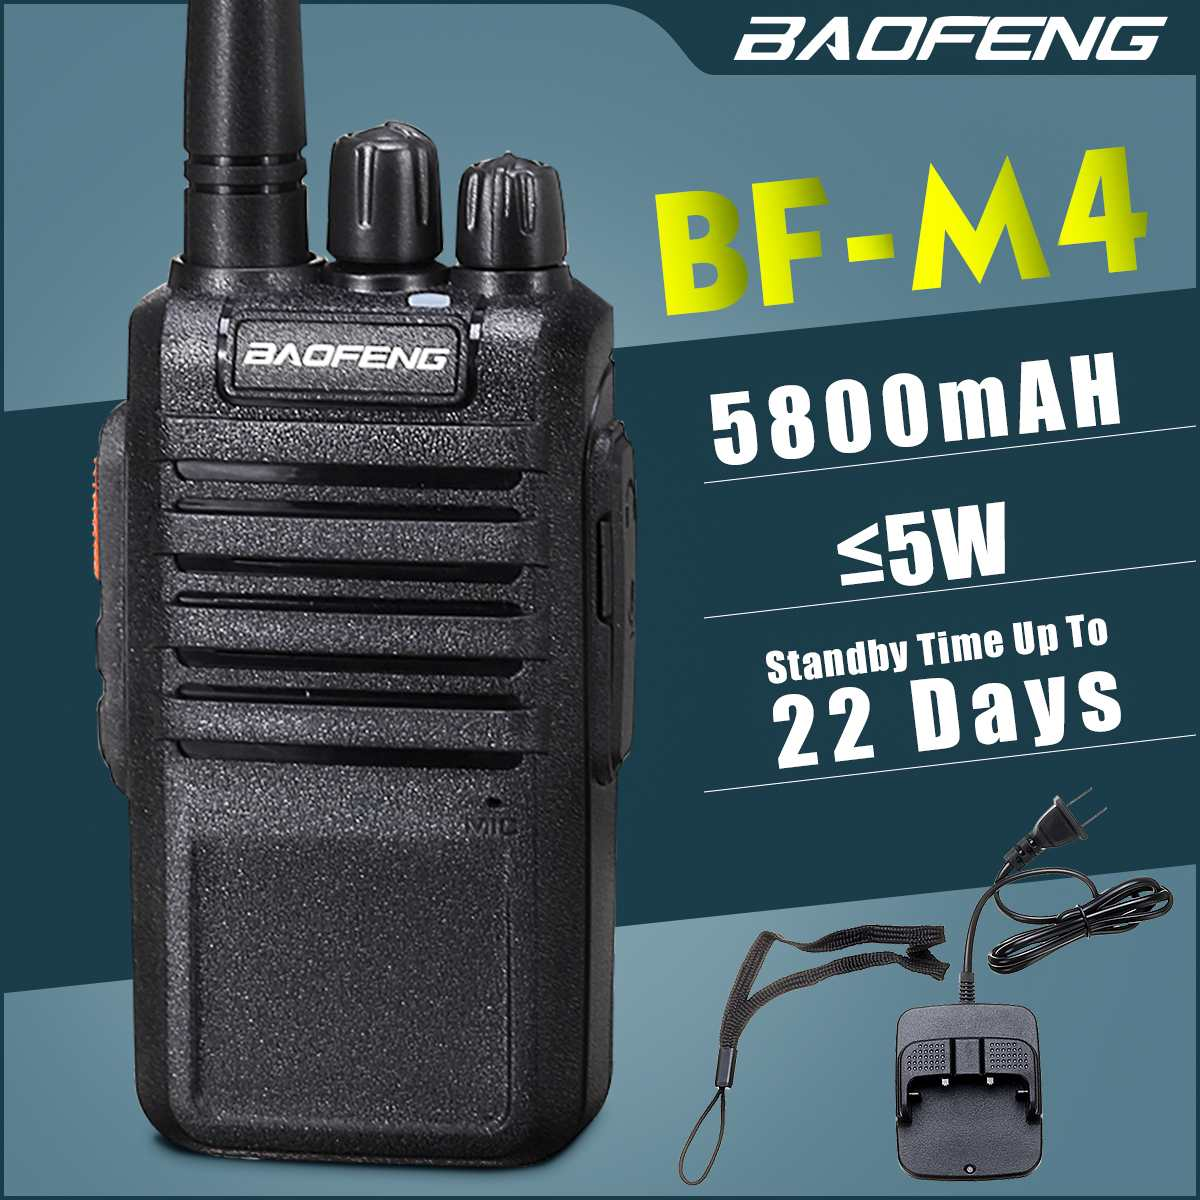 BAOFENG BF-M4 Walkie Talkie Two Way Radio UHF 400-470MHz 16CH Portable Transceiver With Antennas Long Time Standby Walkie Talkie